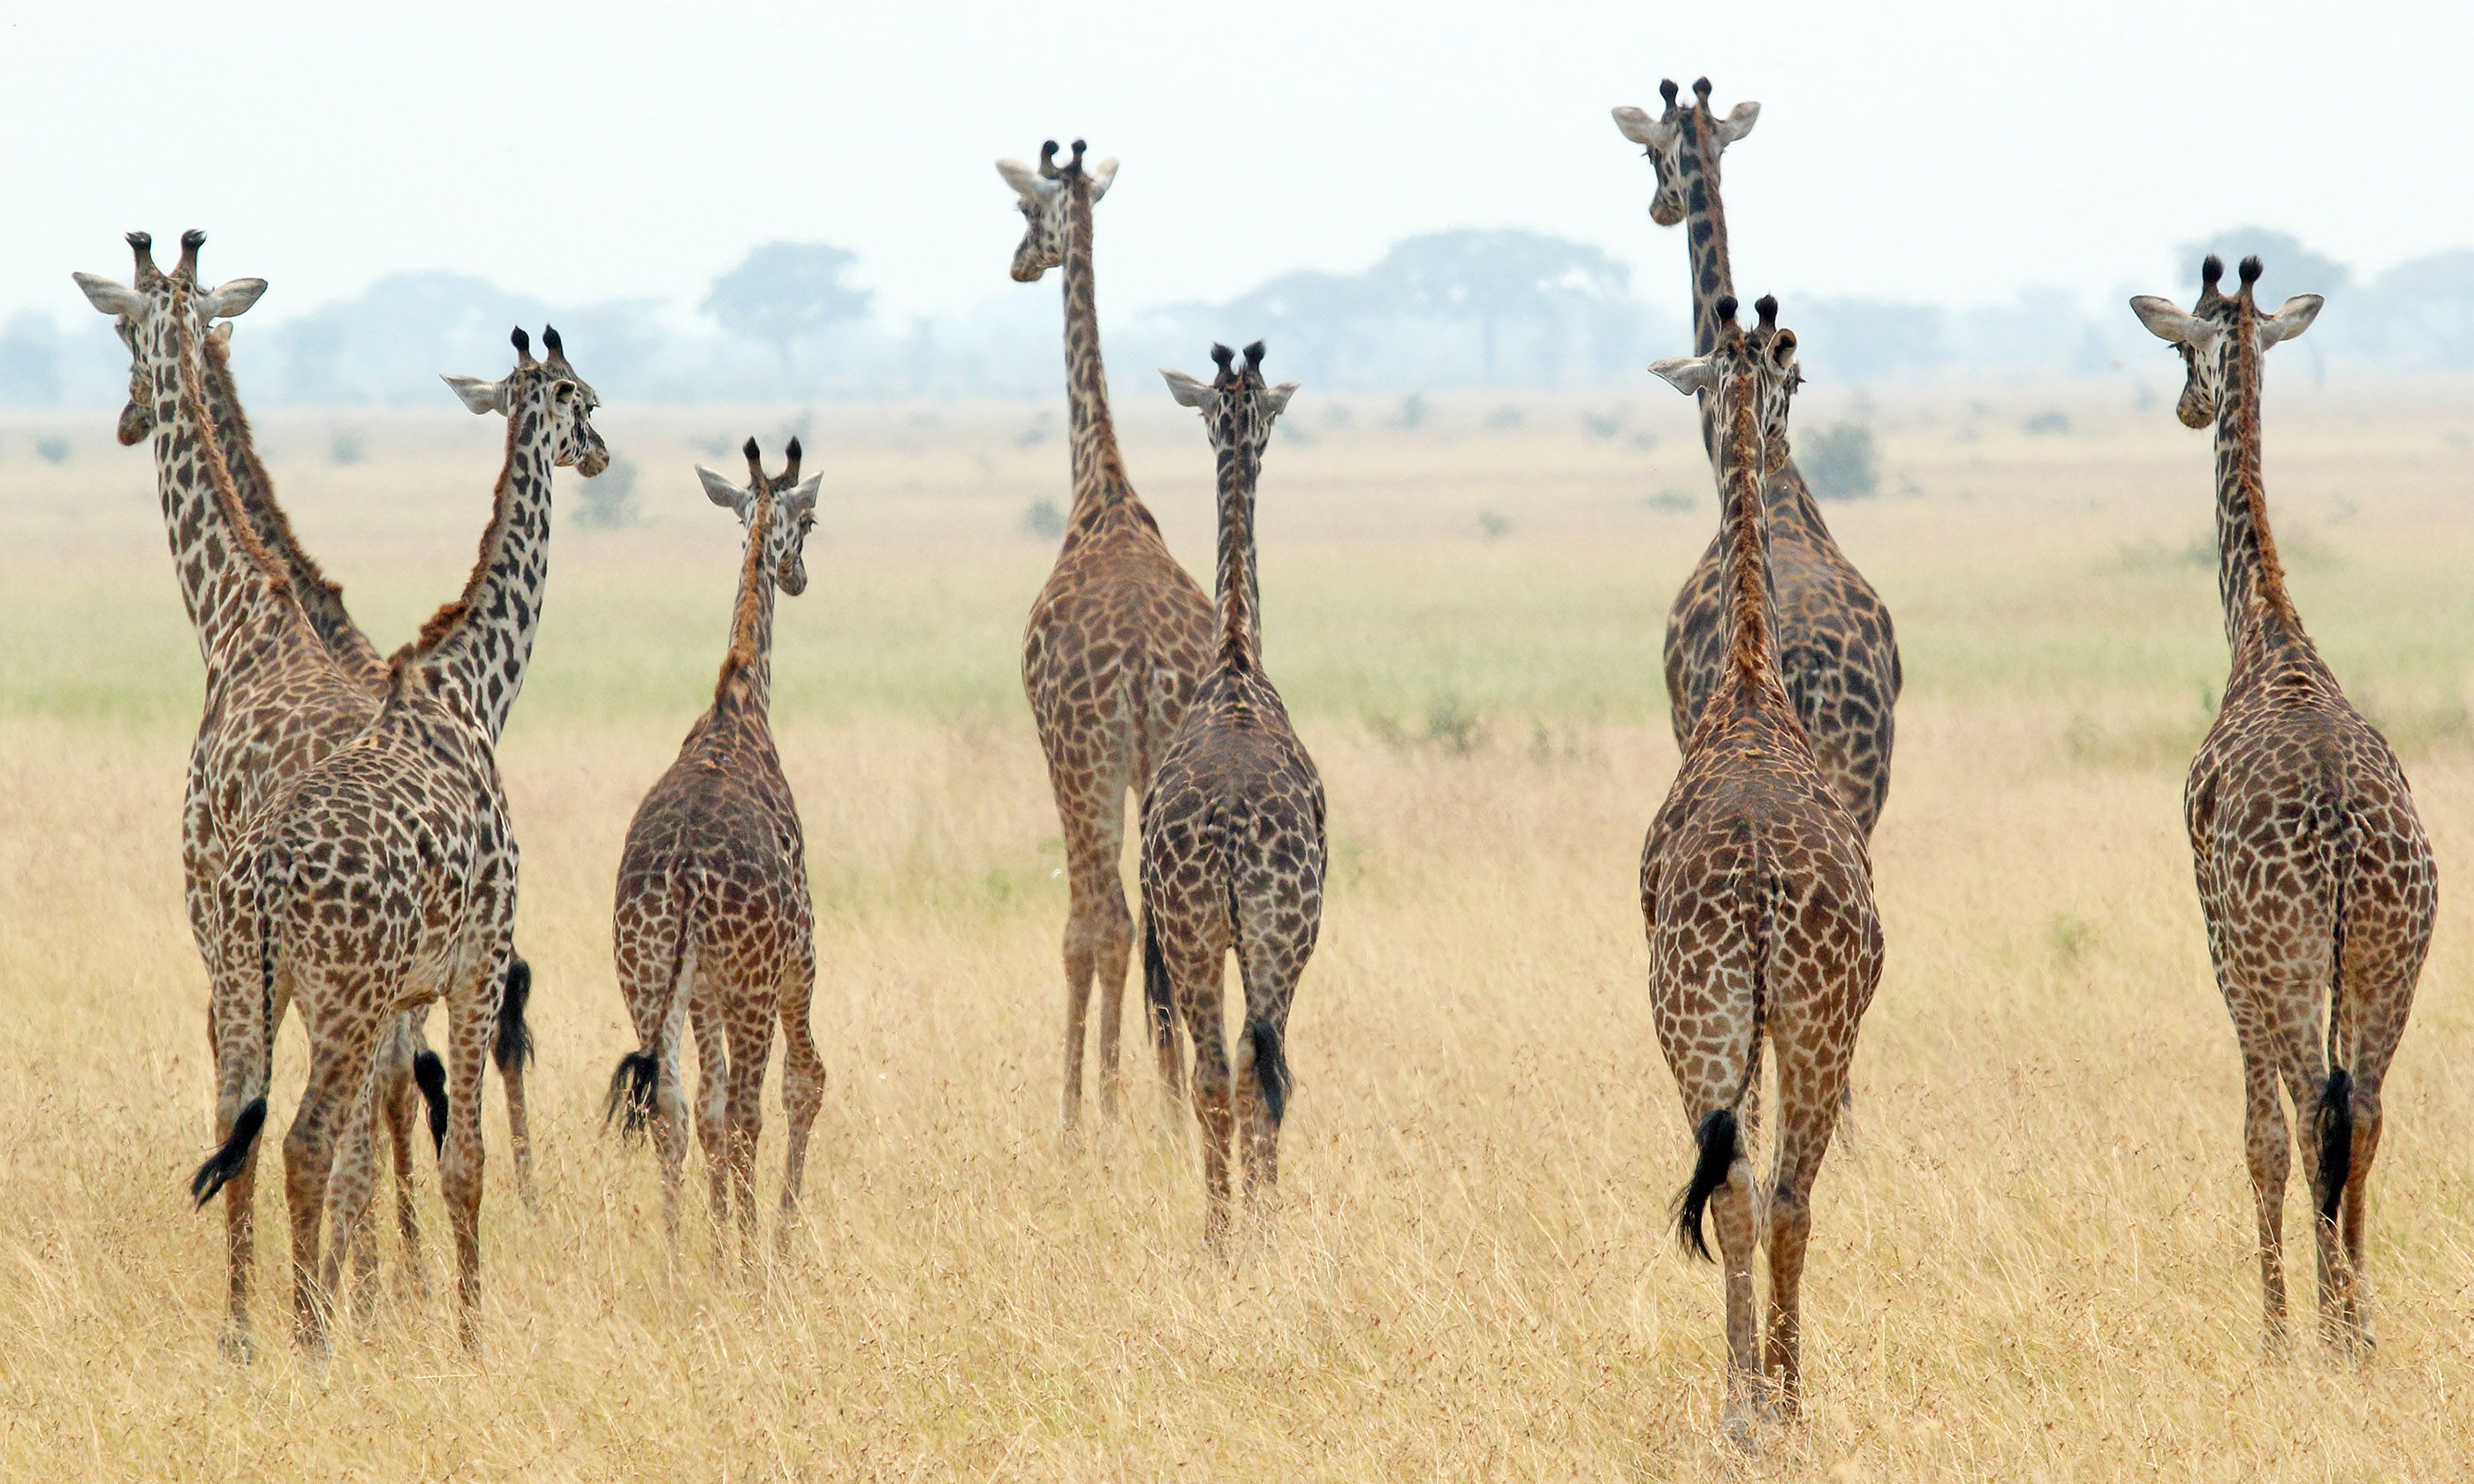 Giraffes in the Serengeti (Shutterstock)